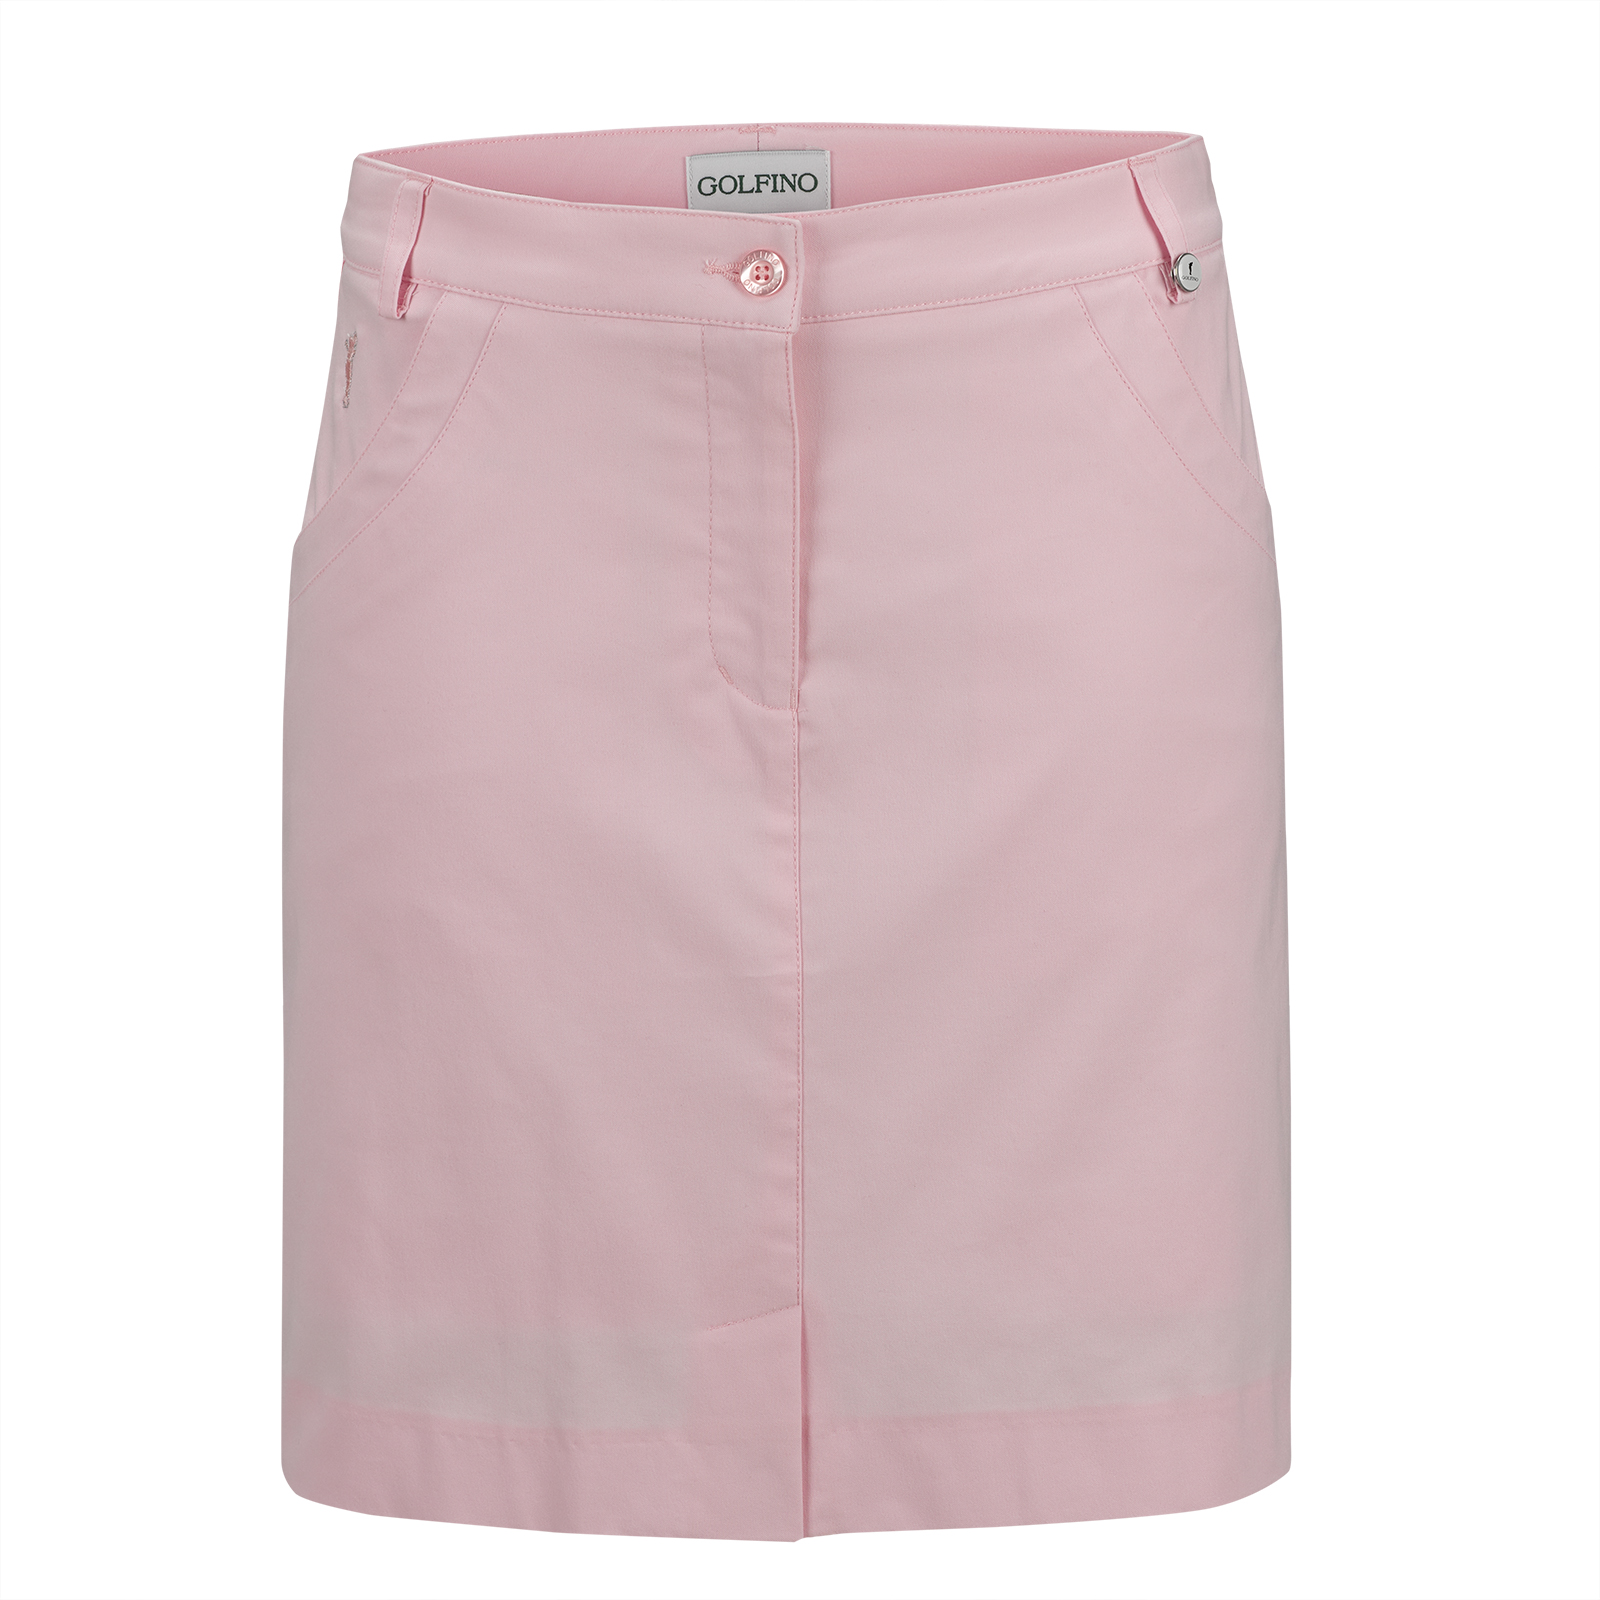 Cotton-blend ladies' medium golf skort with inner shorts